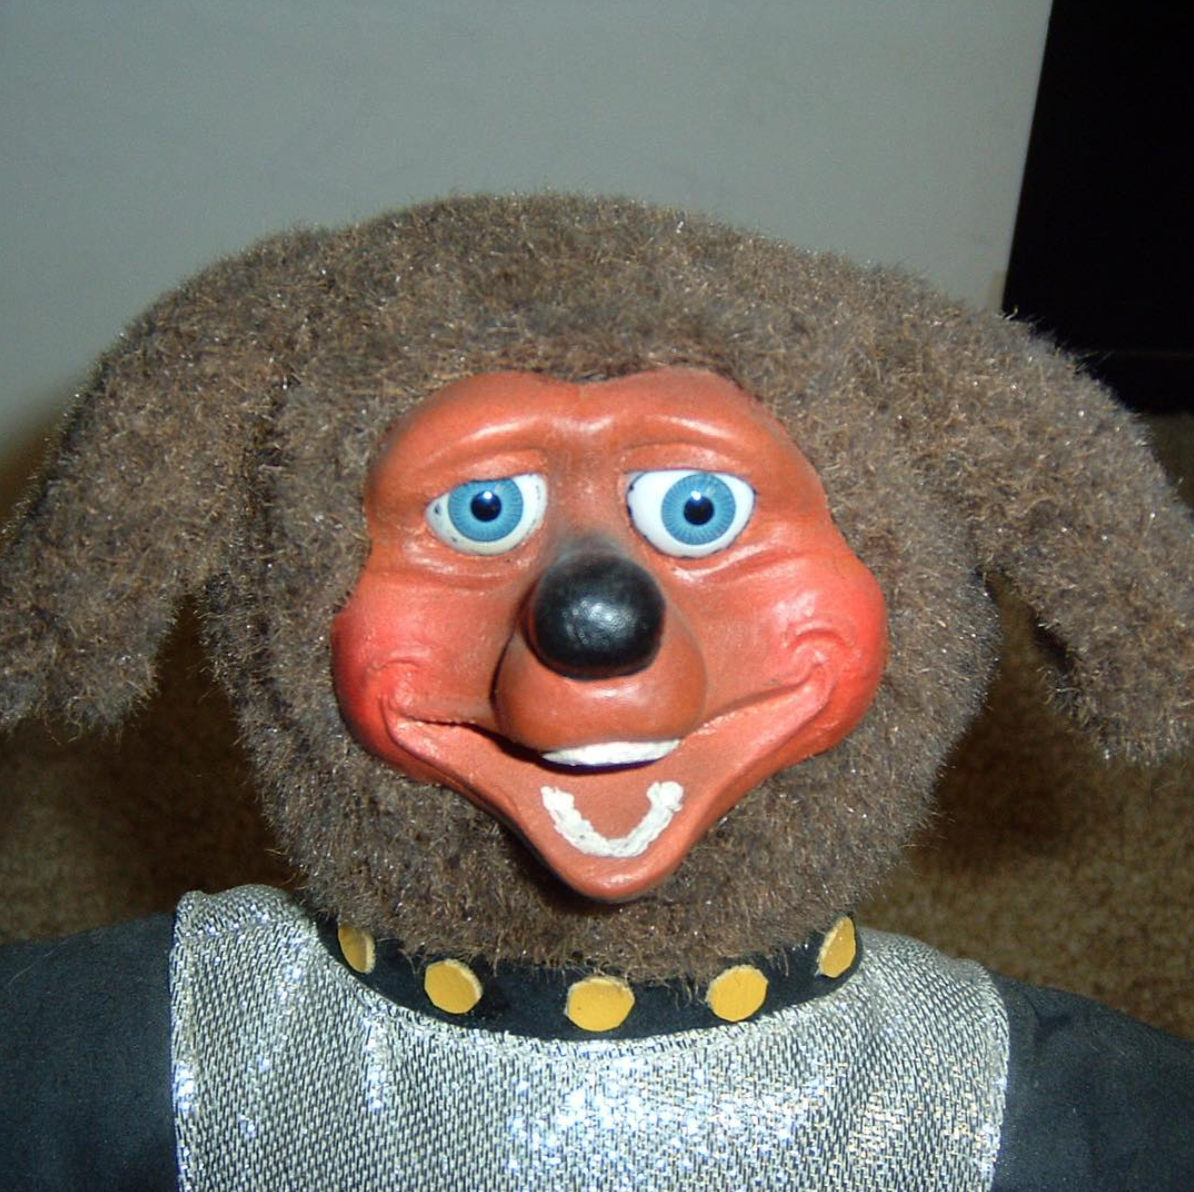 Rare prototype Duke plush doll